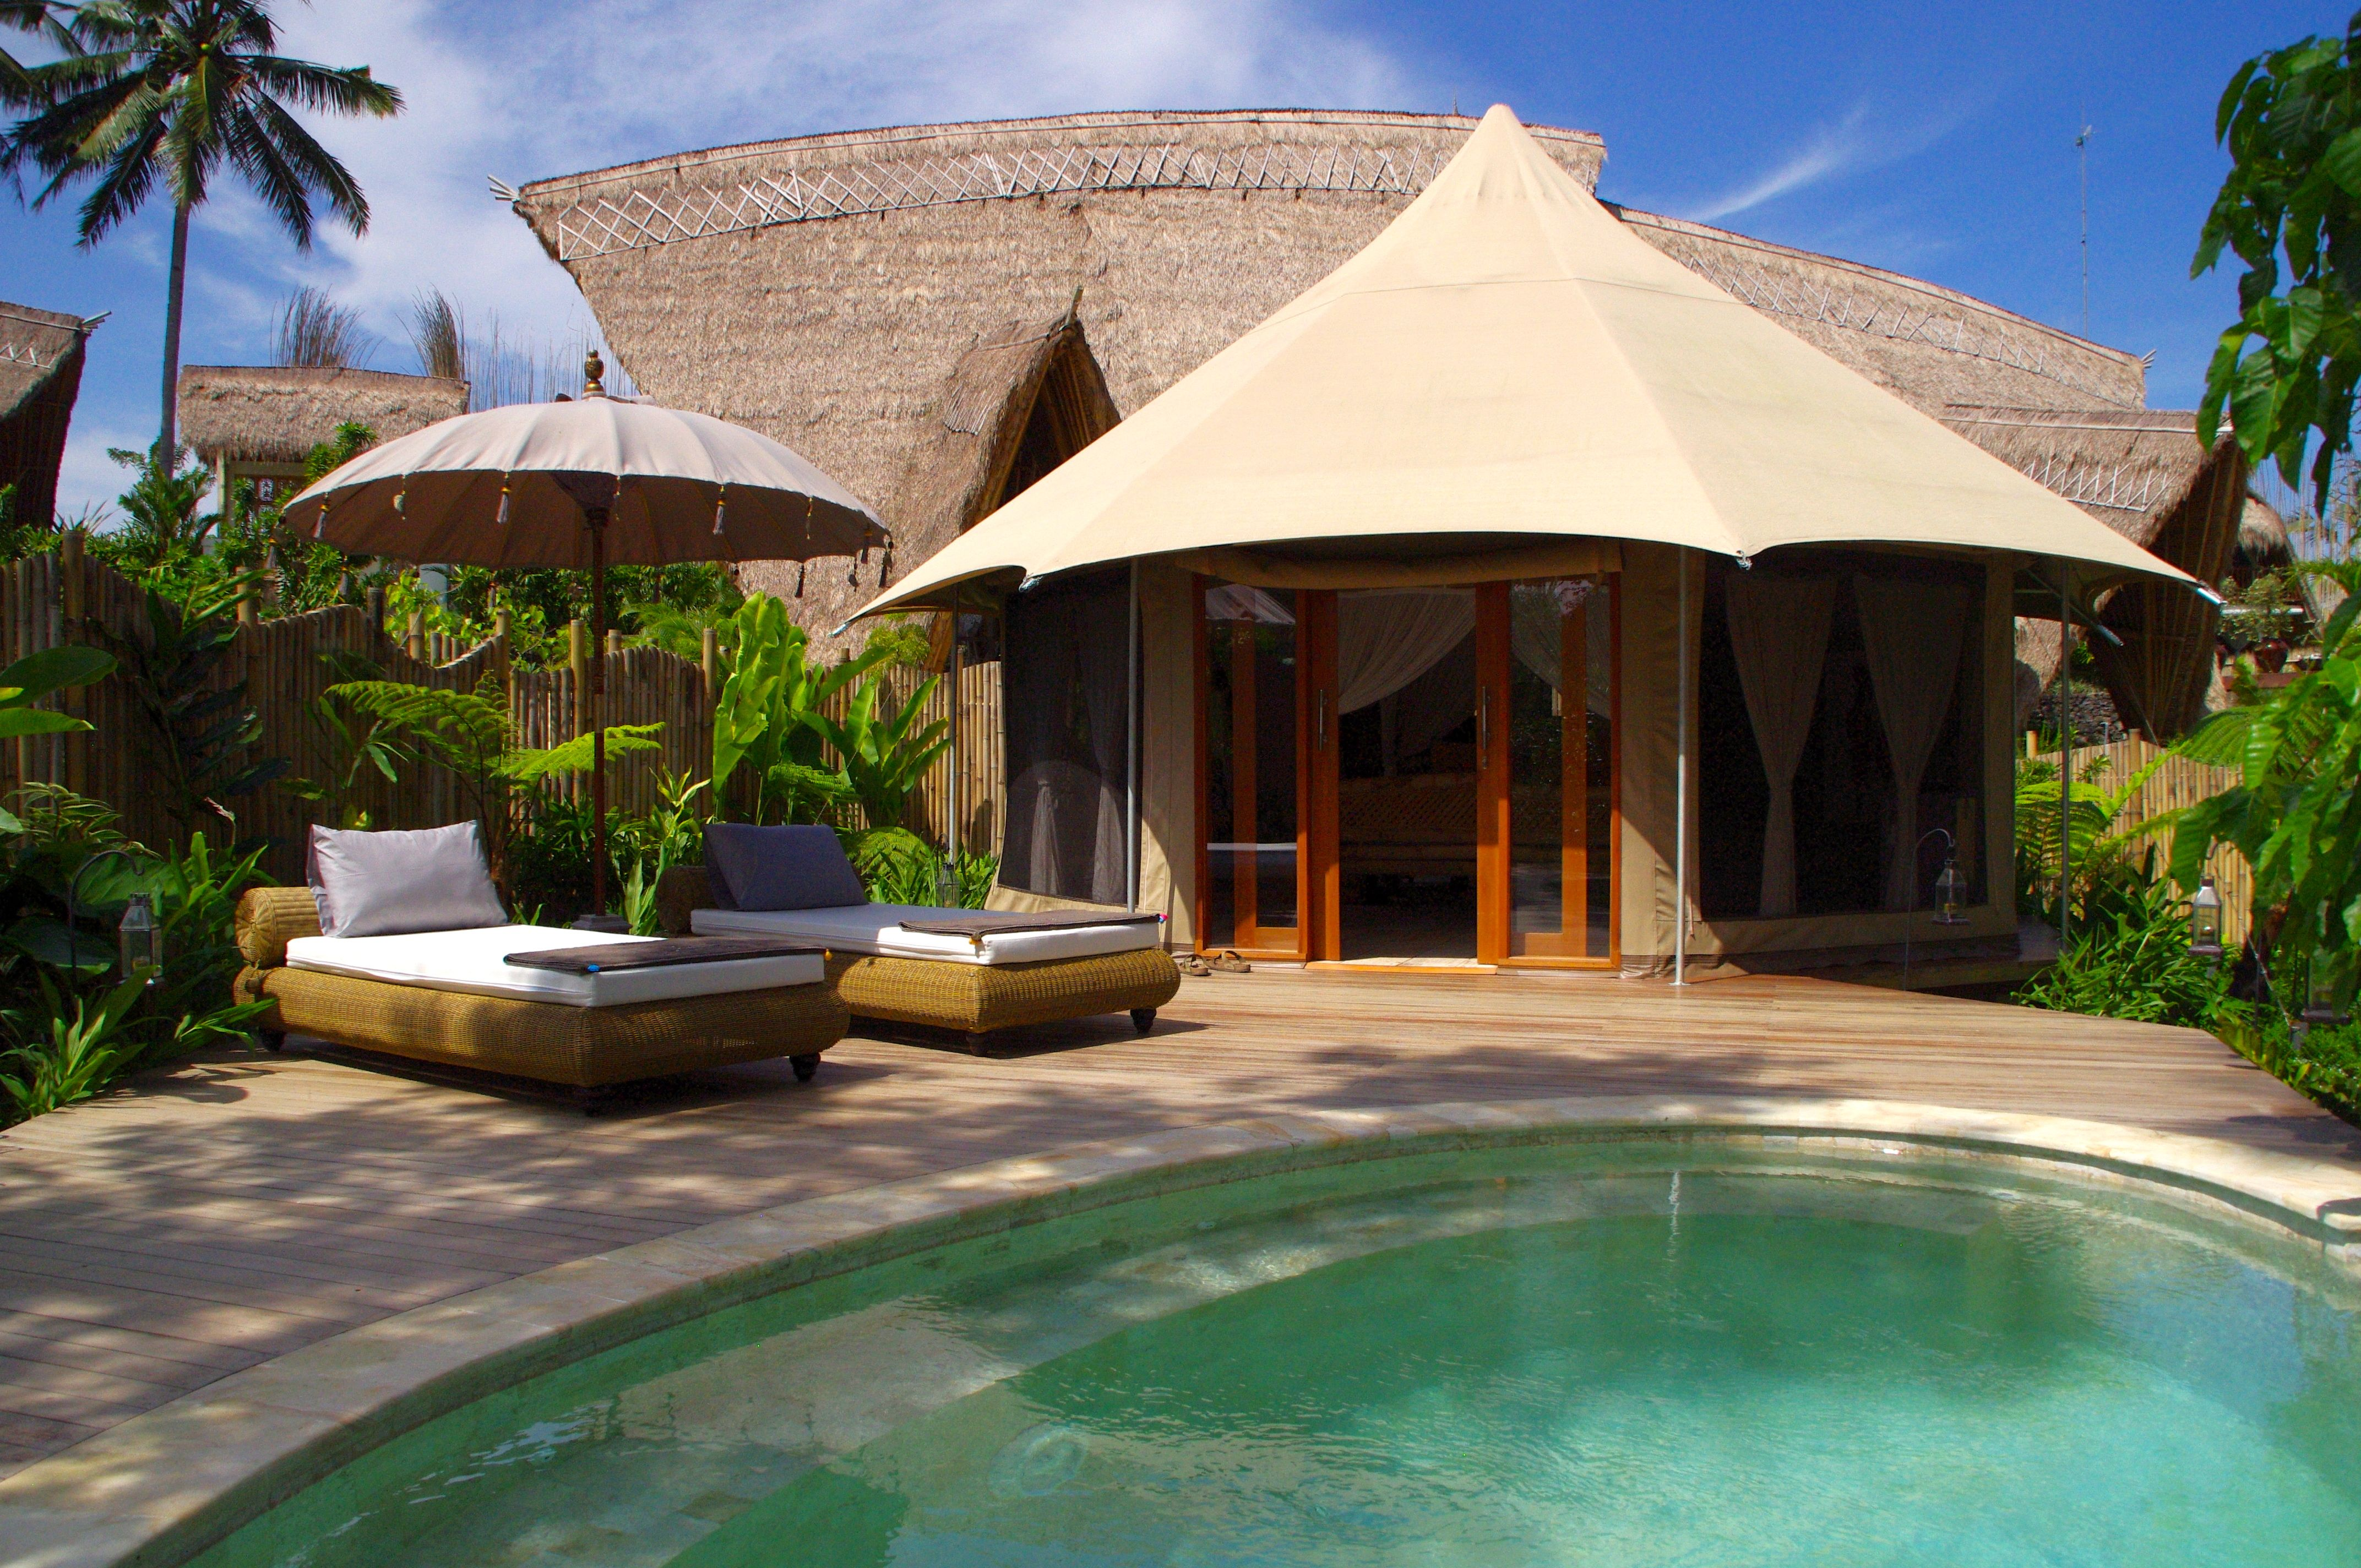 private pool at Tents OgoOgoh Sandat Glamping Tent